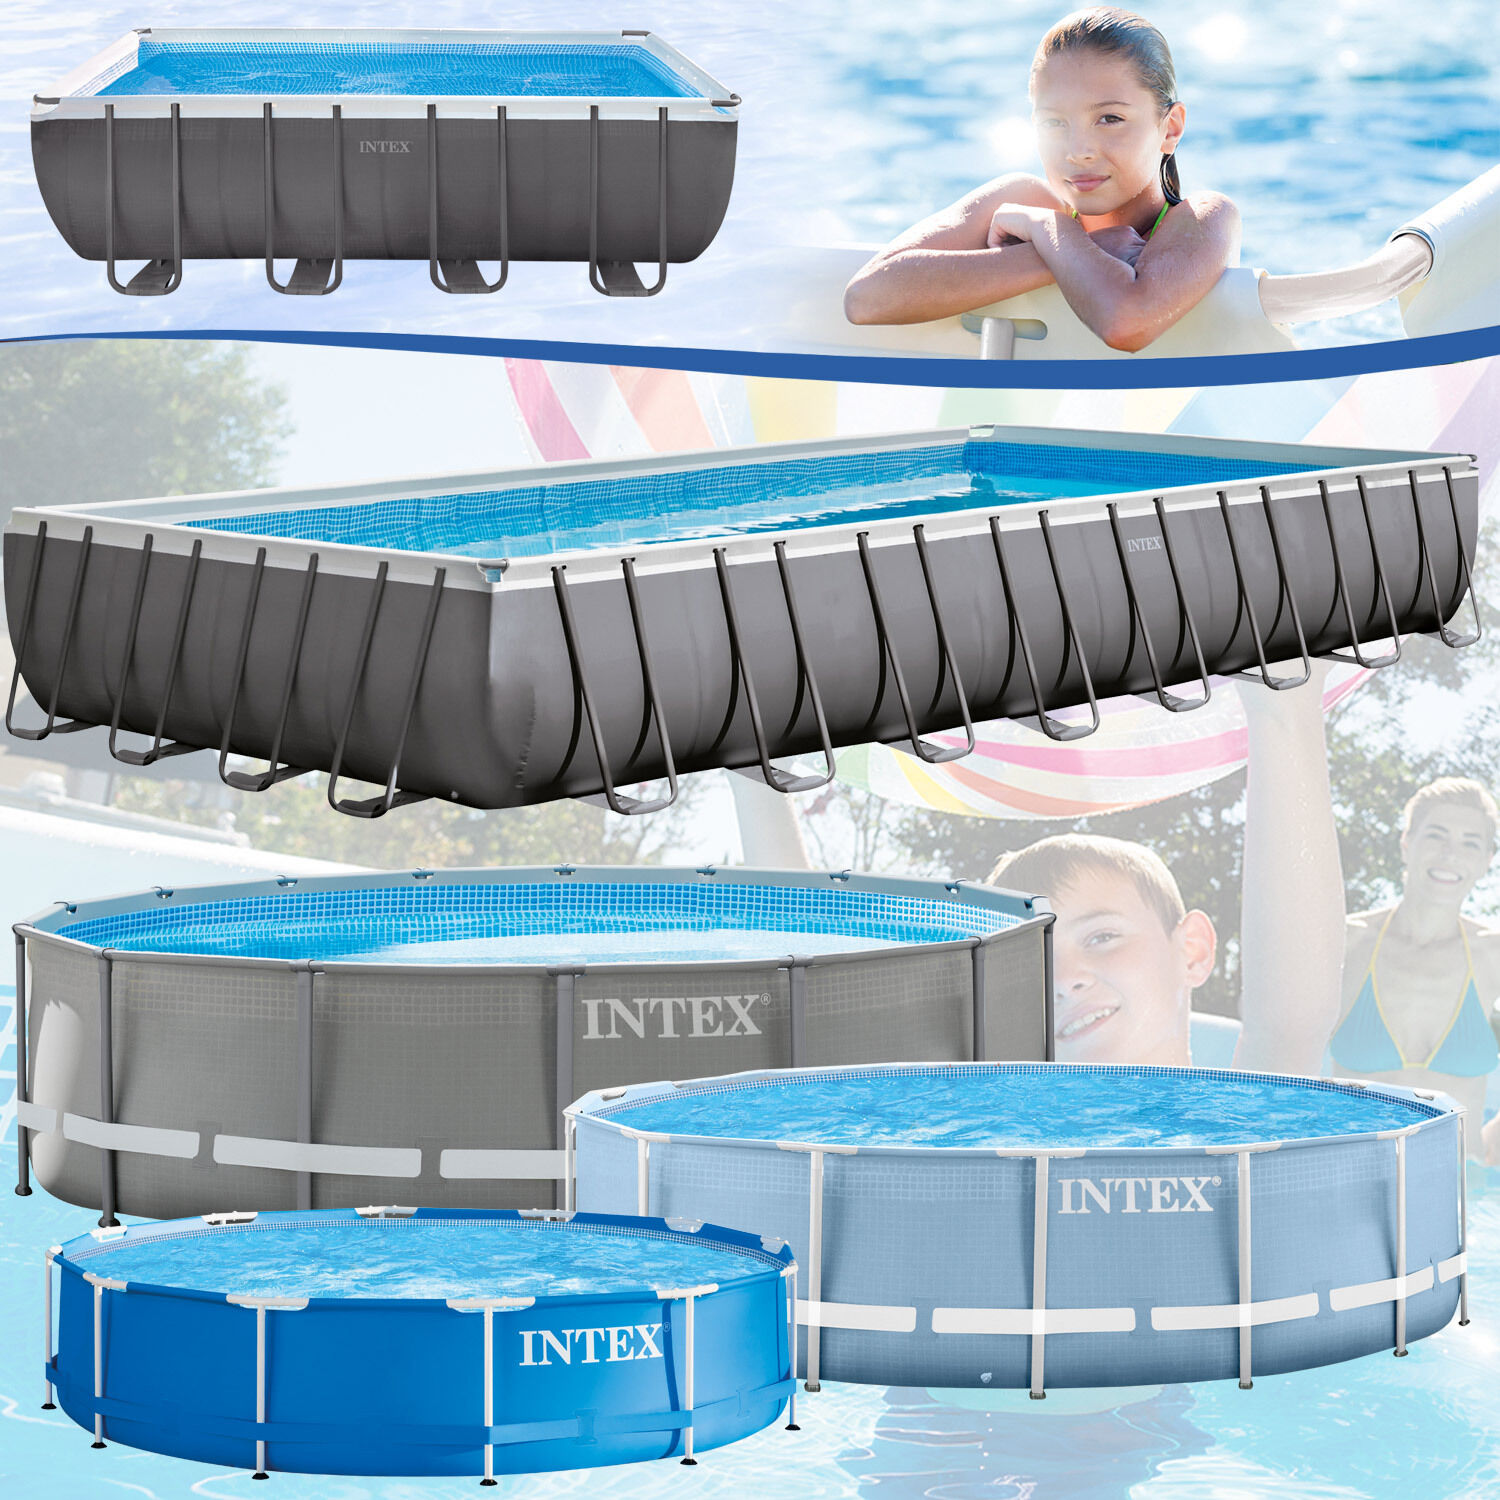 Aufblasbarer Pool Heizung Frame Pool Eckig Gallery Of Clear Pool Set Ovalpool Tlg With